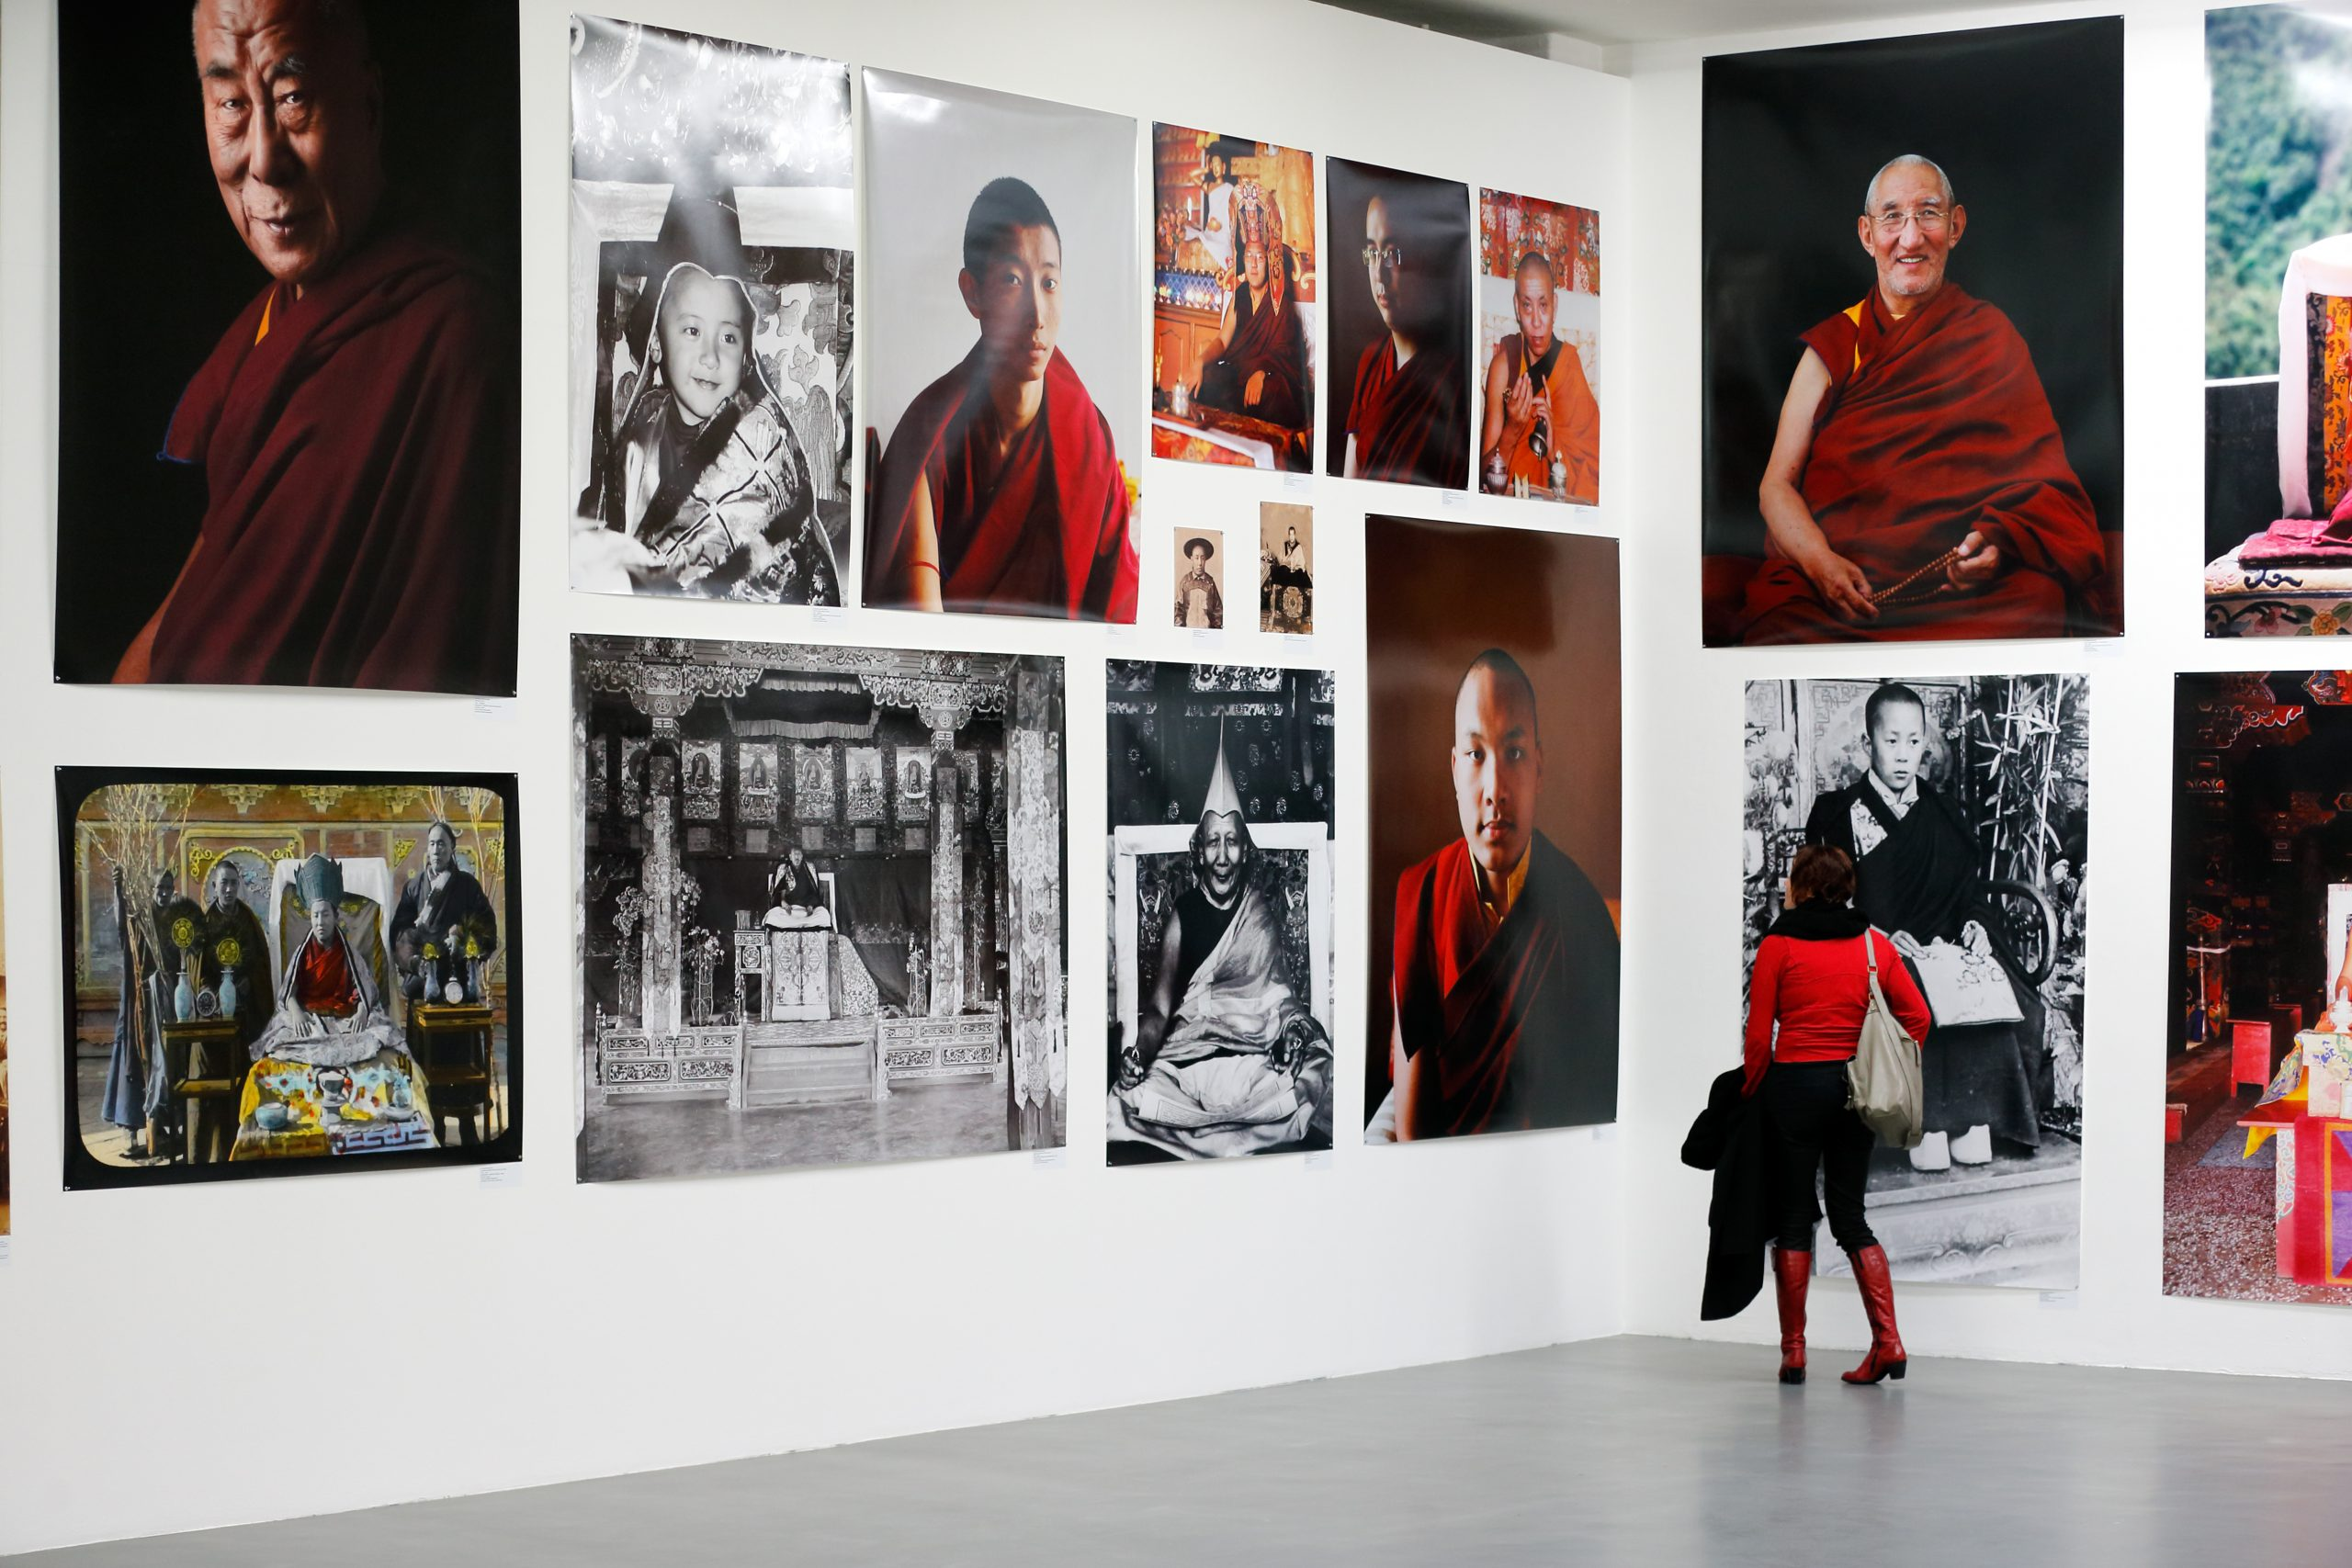 Installation overview Tulkus 1880 to 2018. Photography by Aad Hoogendoorn. (4)